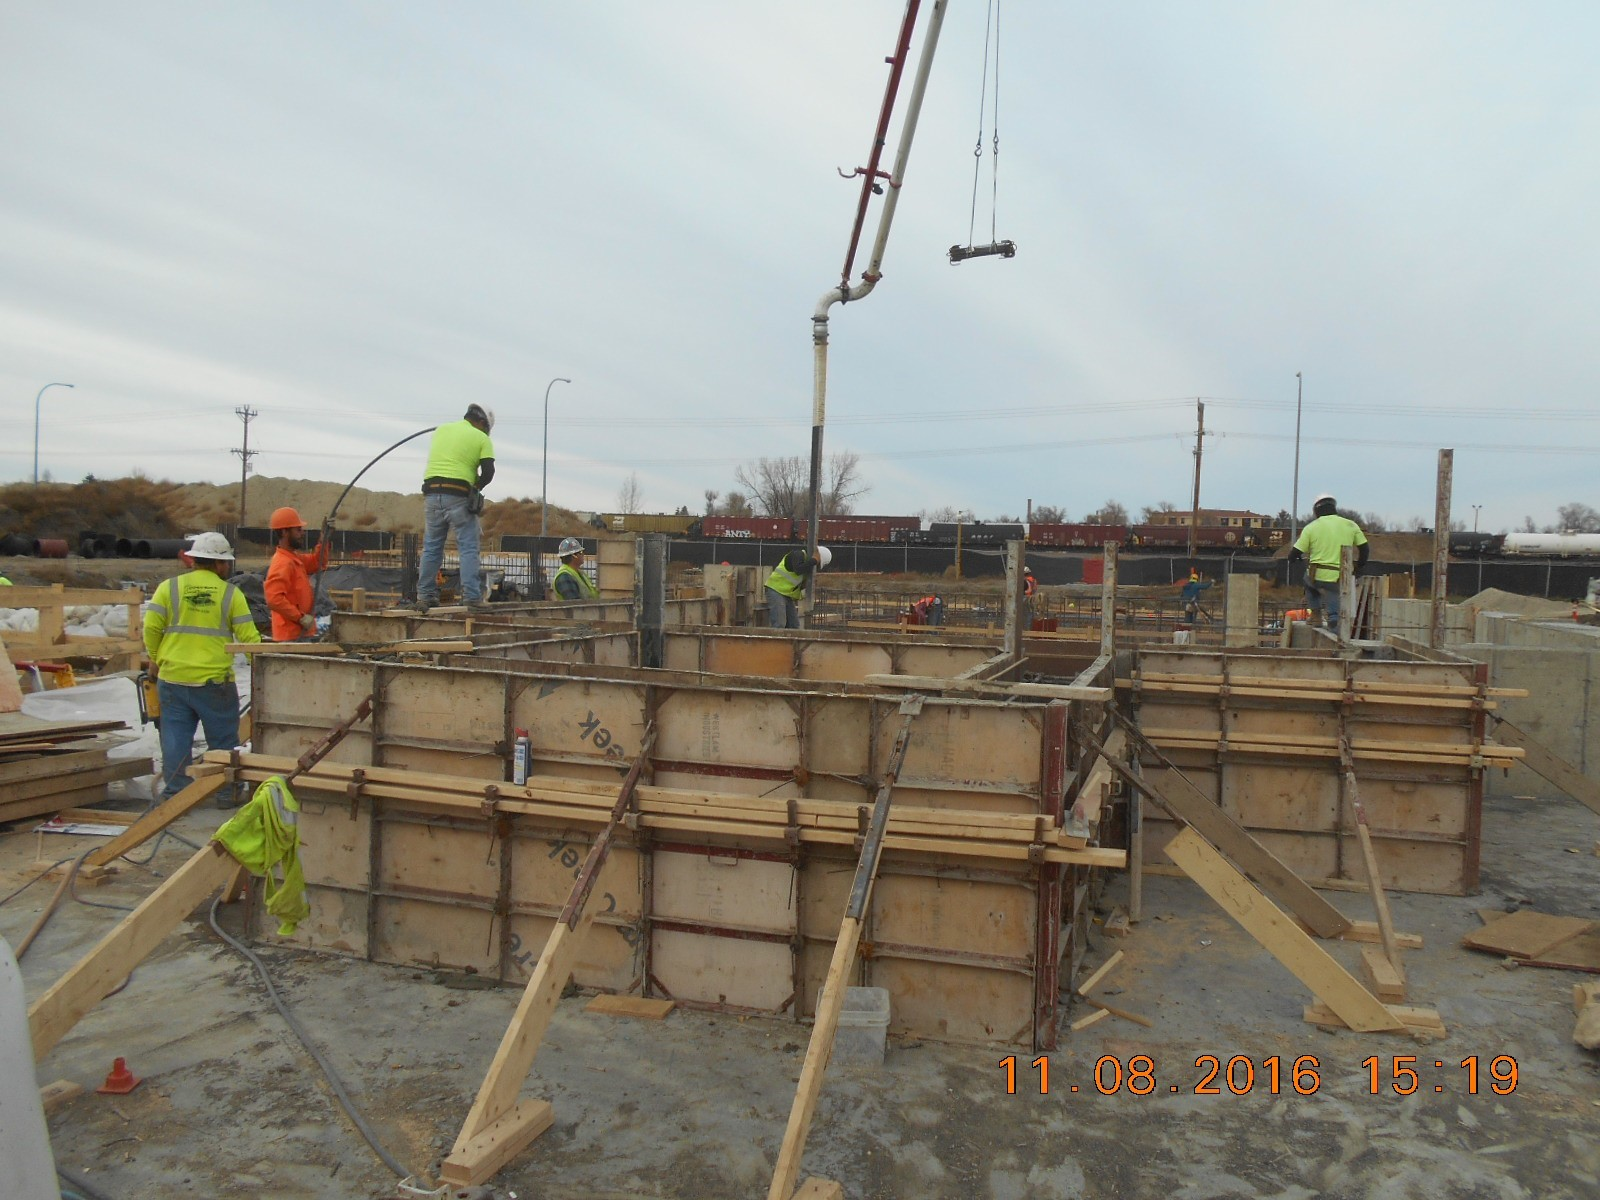 JTJ placing concrete for the upper walls of the Reactor/Rapid Mix Basins.